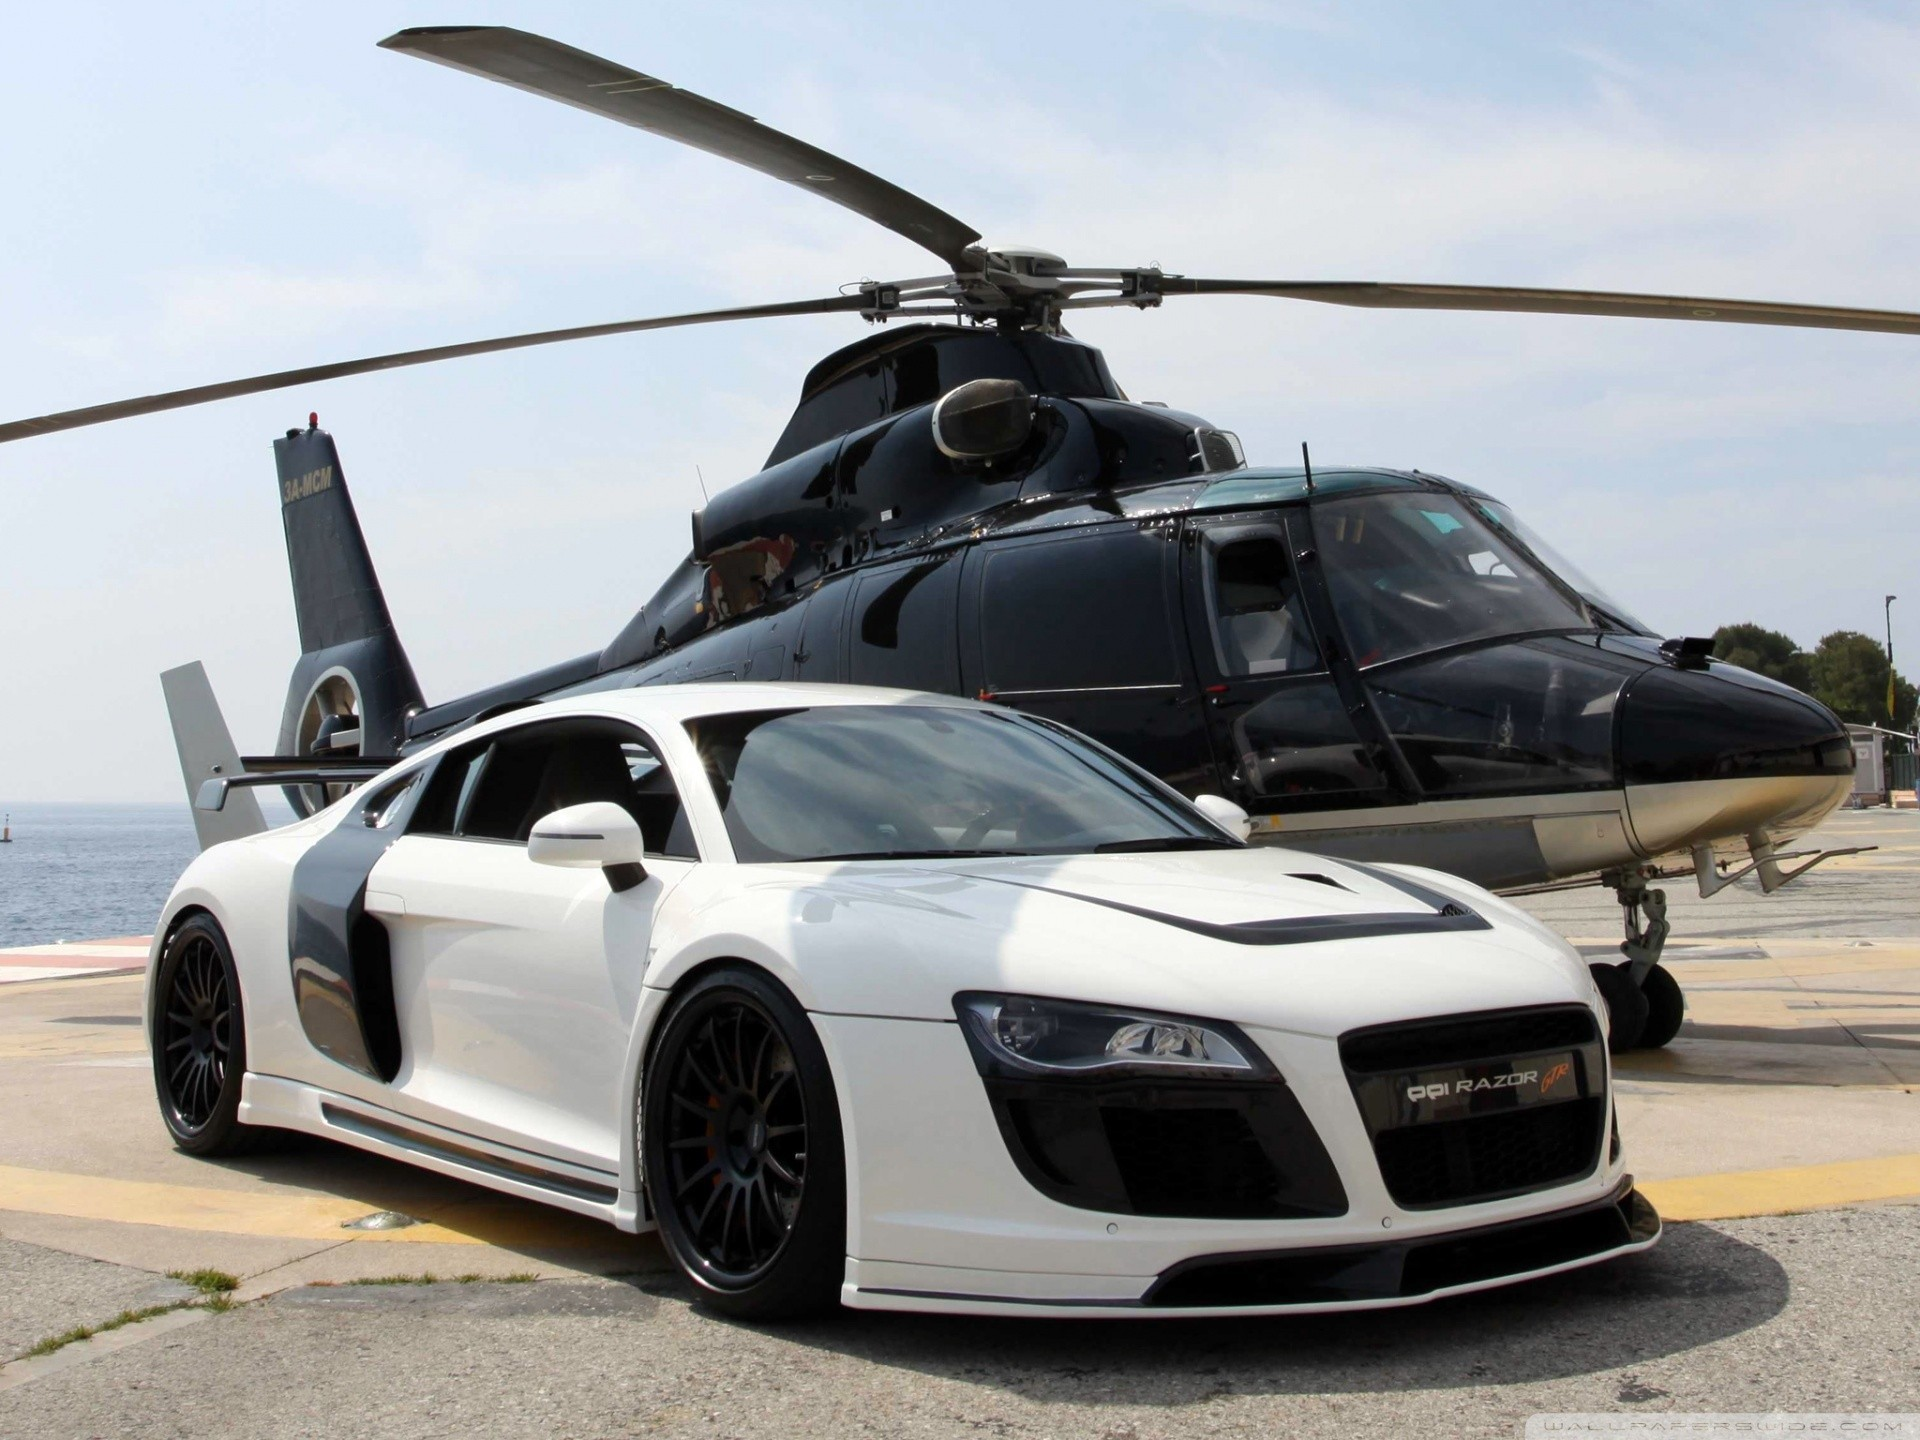 Helicopters cars vehicles audi HD Wallpaper